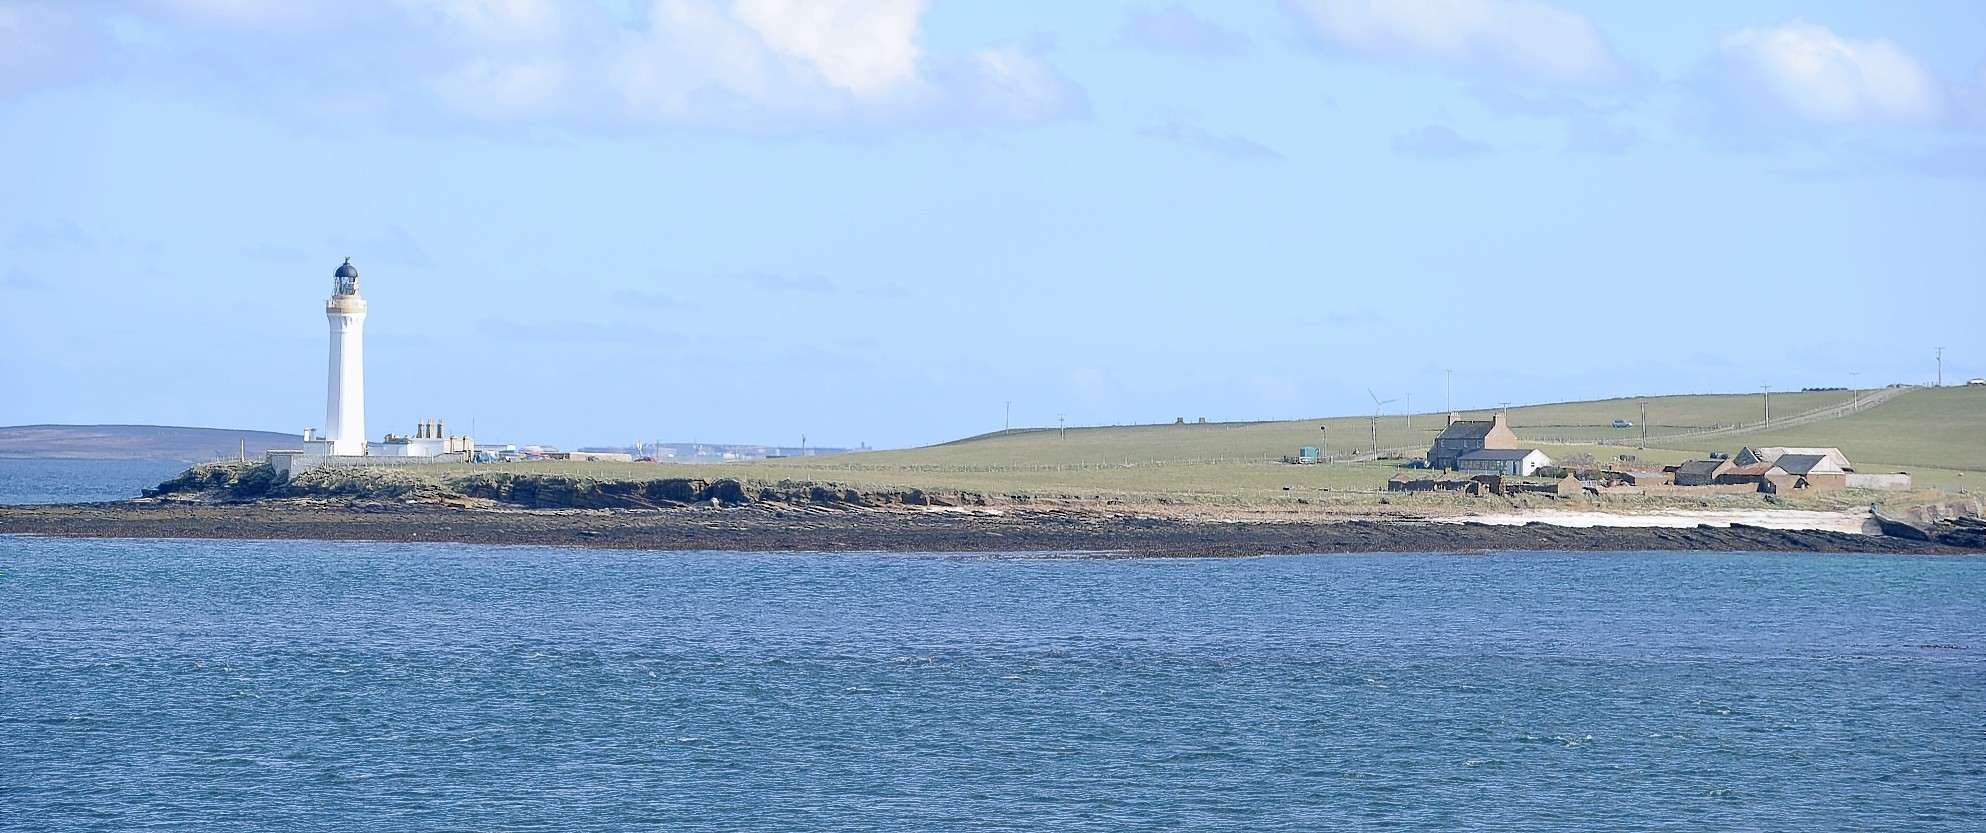 The Graemsay Lighthouse on the island of Graemsay in Scapa Flow close to Stromness.